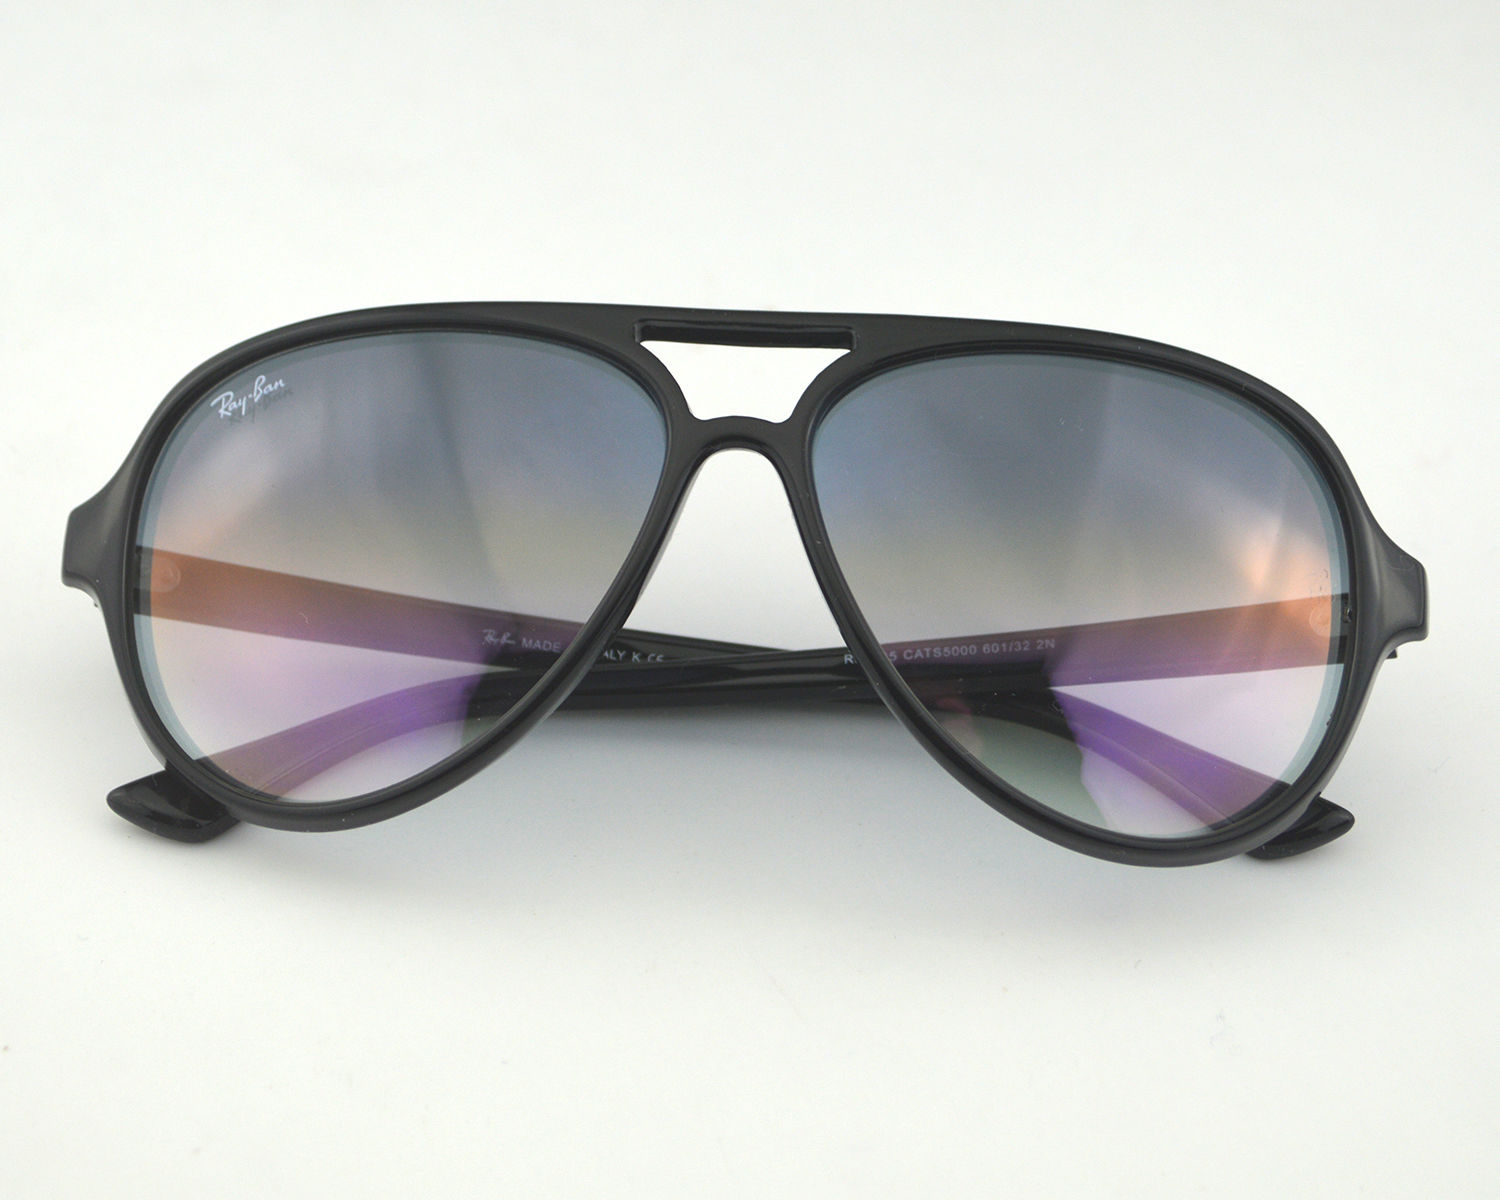 0d1498d65be Ray Ban RB 4125 Cats 5000 Classic 601 32 Black   Light Grey Gradient Glass  Lens Unisex Sunglasses 59mm